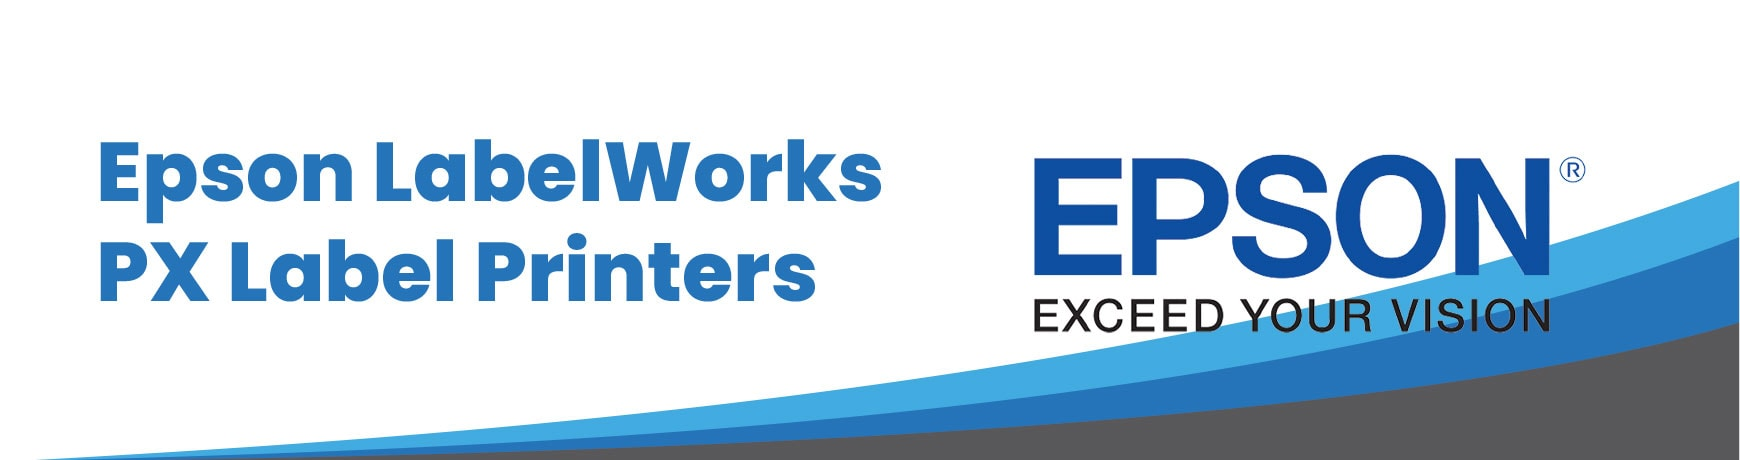 Epson LabelWorks PX Label Printers